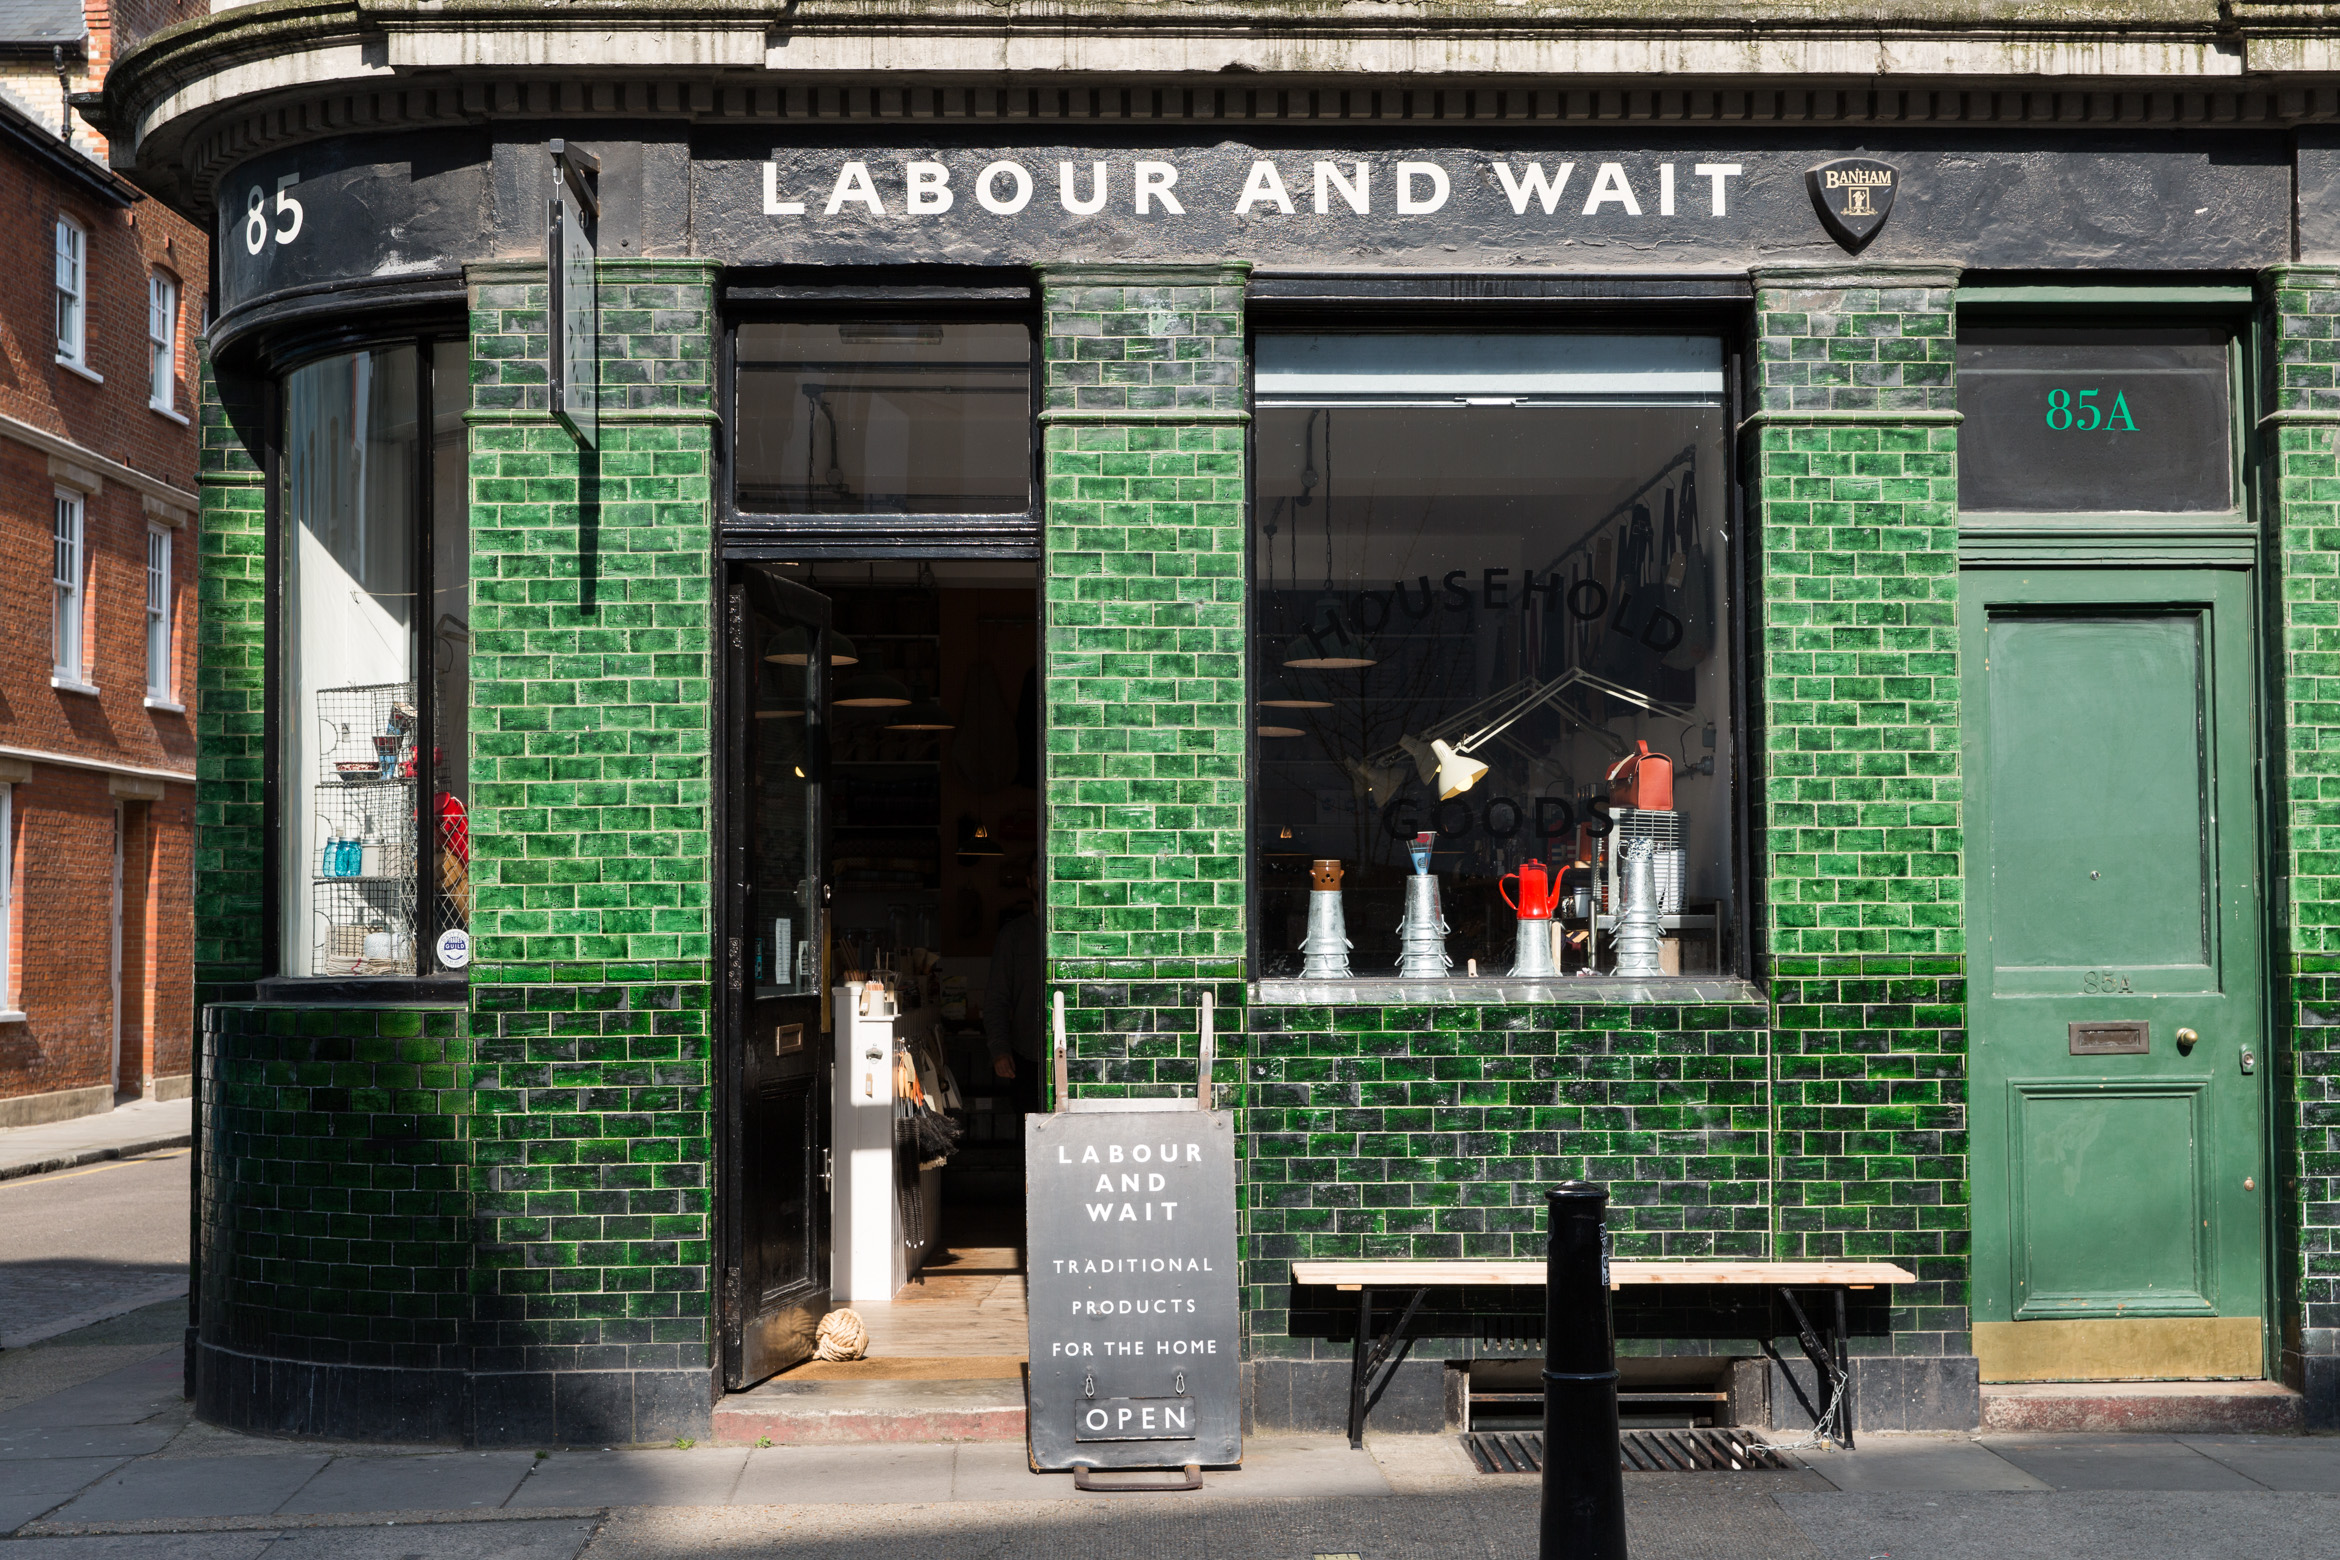 Labour and Wait general store in London